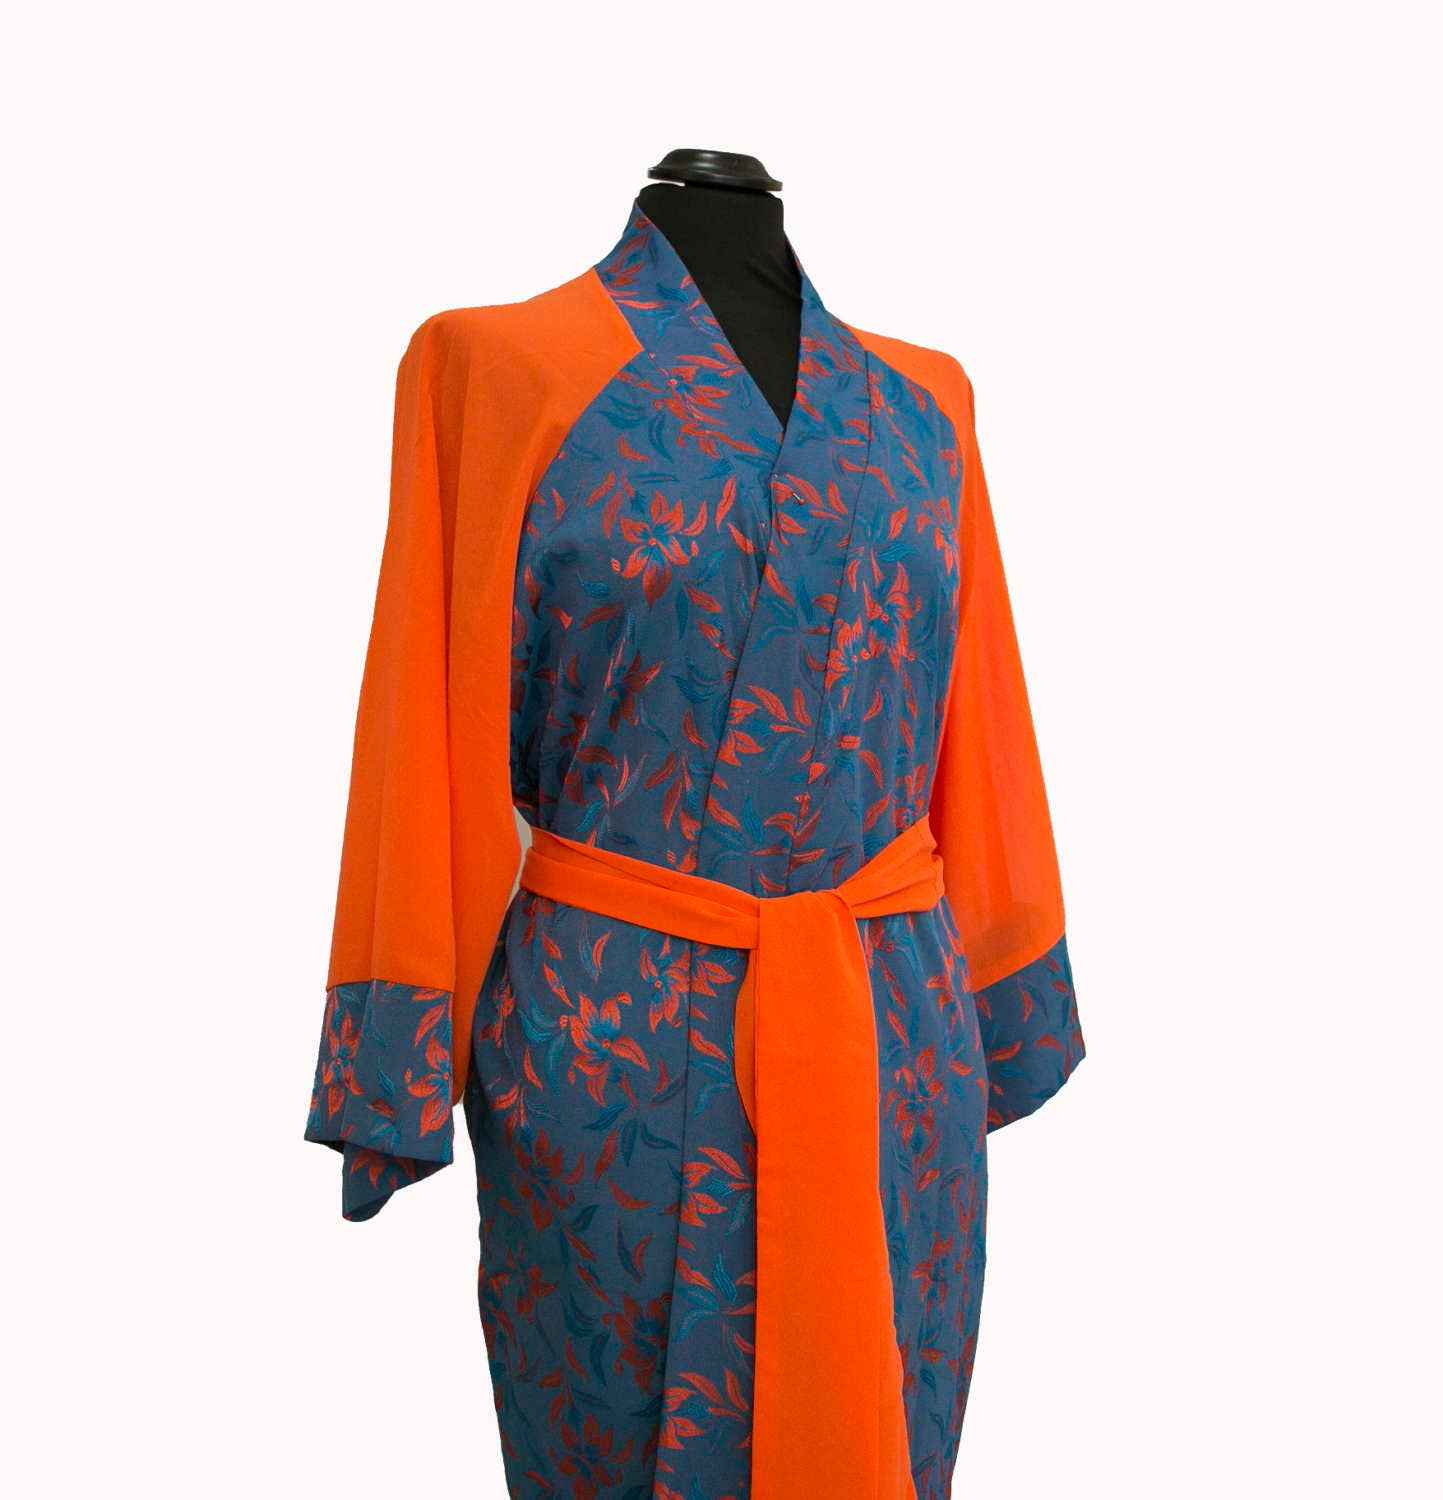 Night Dress in Silk Soft Dressing Gown, Pajamas & Robe for Women ...